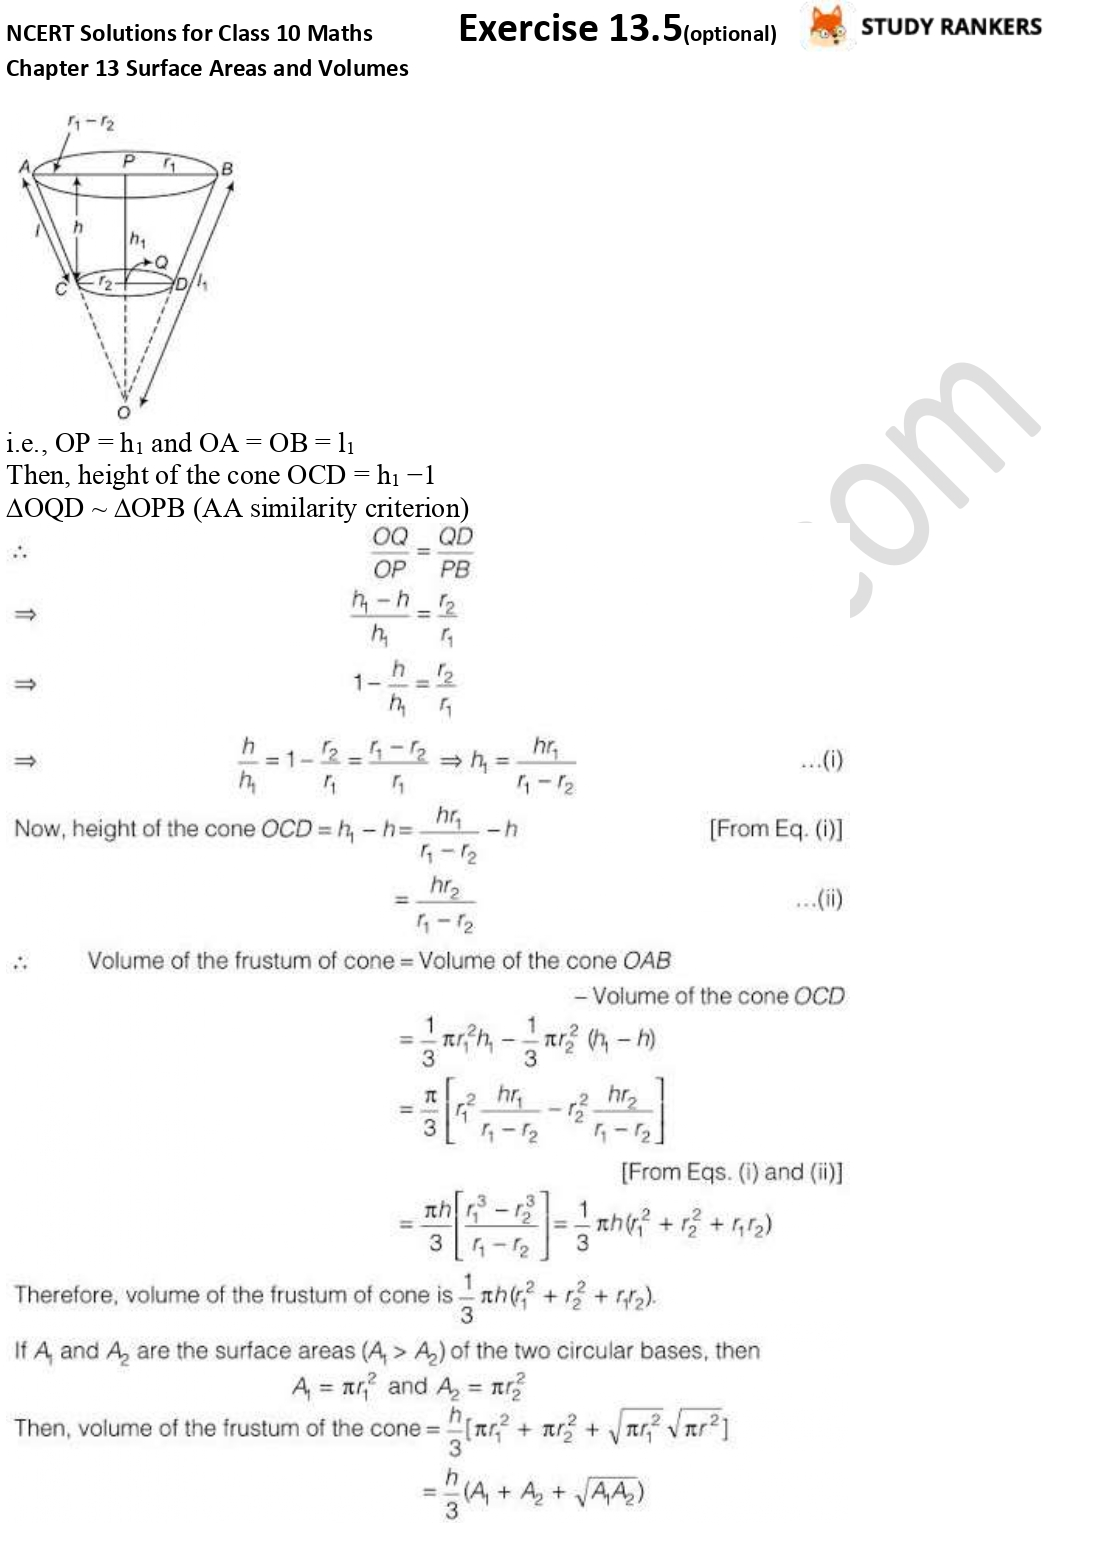 NCERT Solutions for Class 10 Maths Chapter 13 Surface Areas and Volumes Exercise 13.5 Part 7